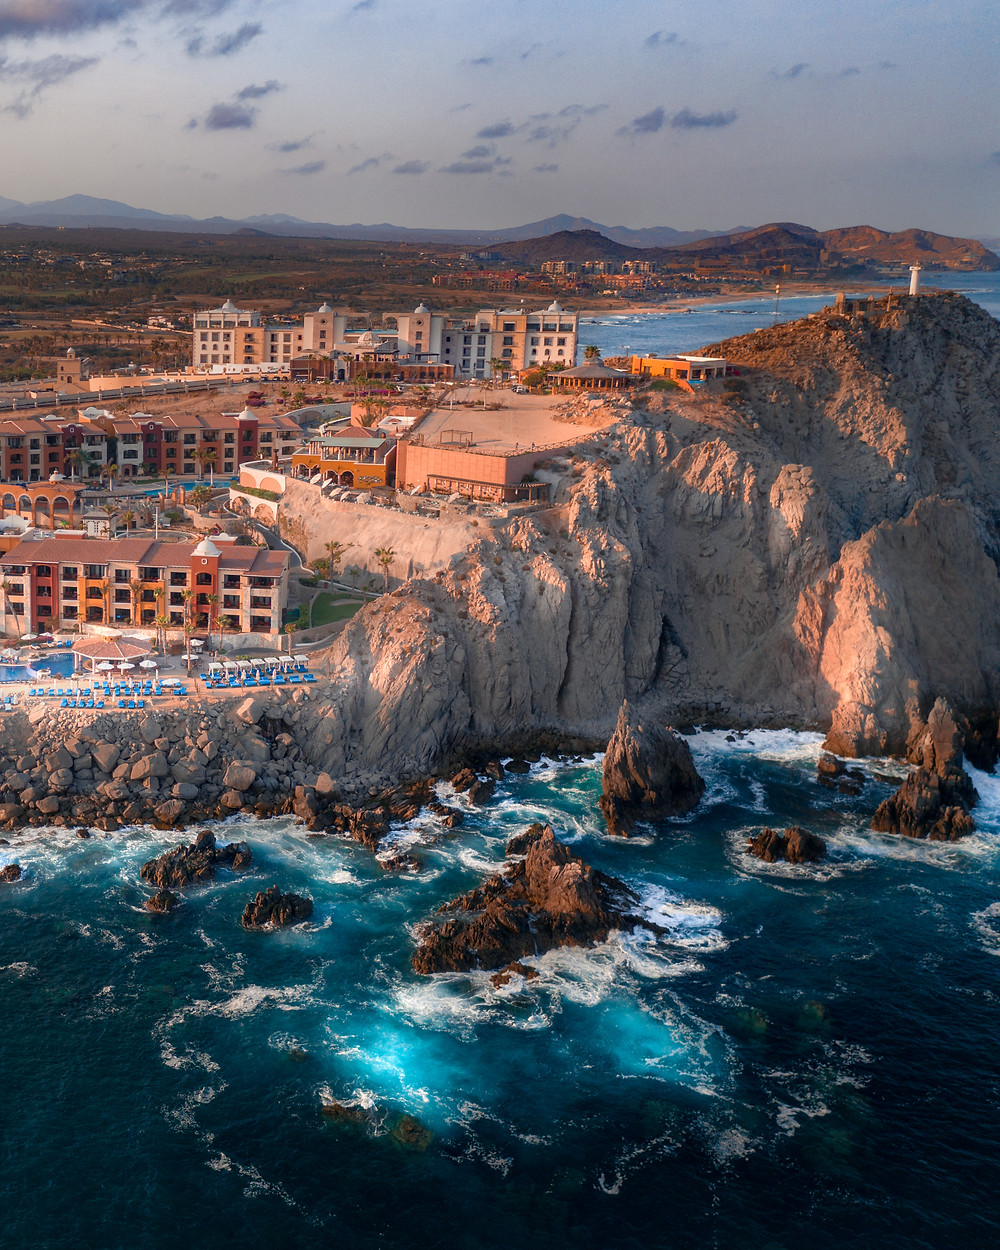 View of a hotel sitting along the cliffs above the ocean